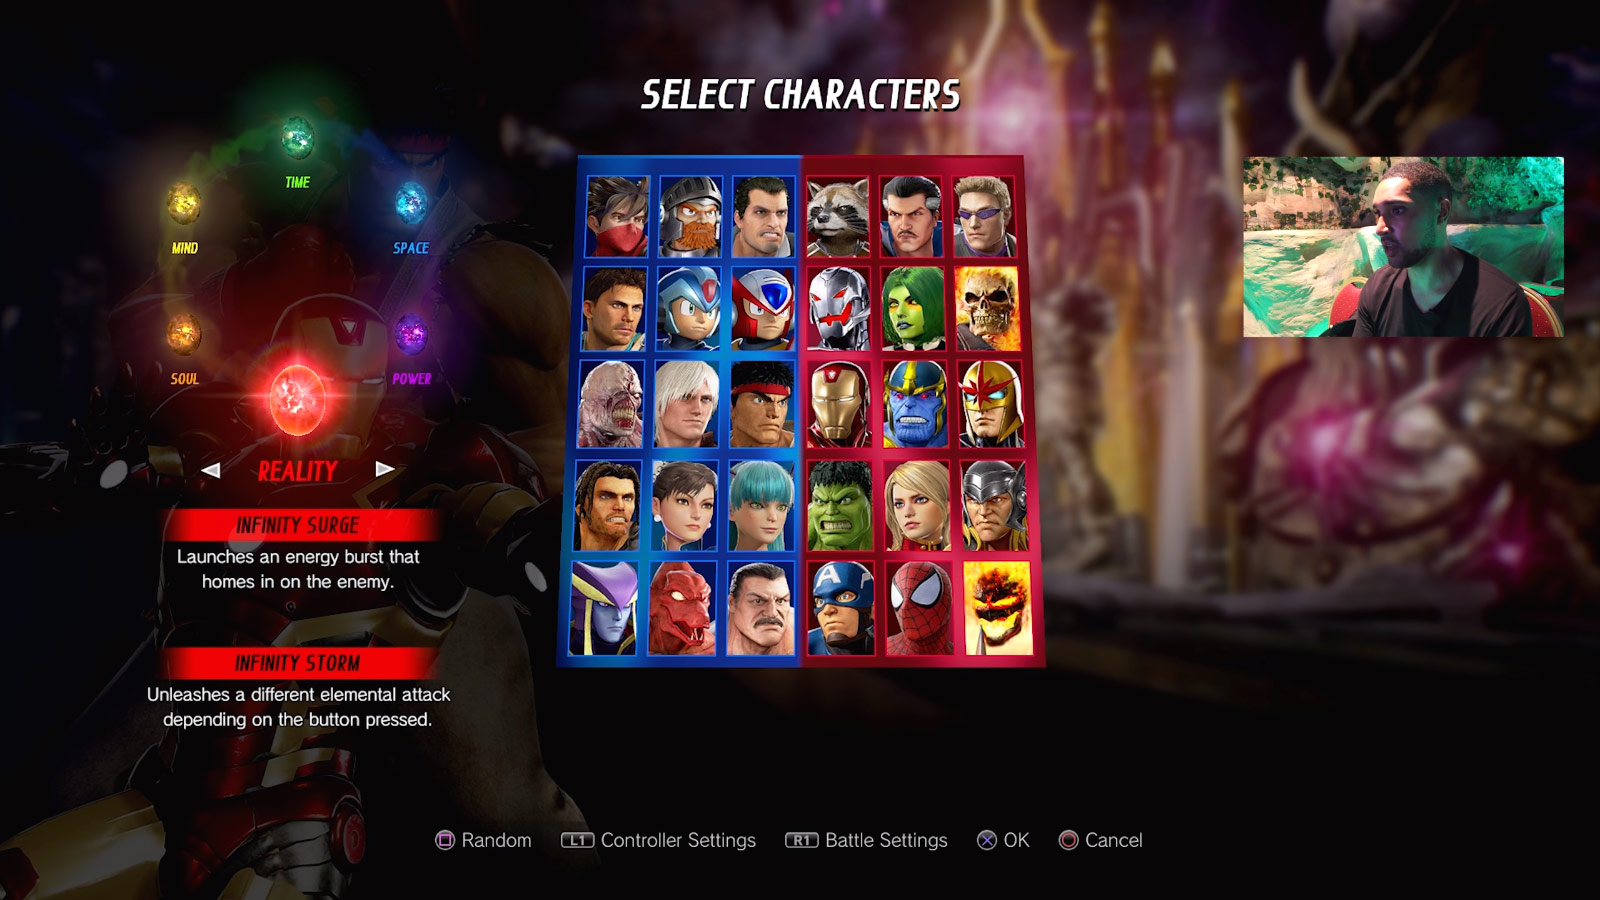 Marvel vs. Capcom: Infinite character select screen and menus 5 out of 6 image gallery